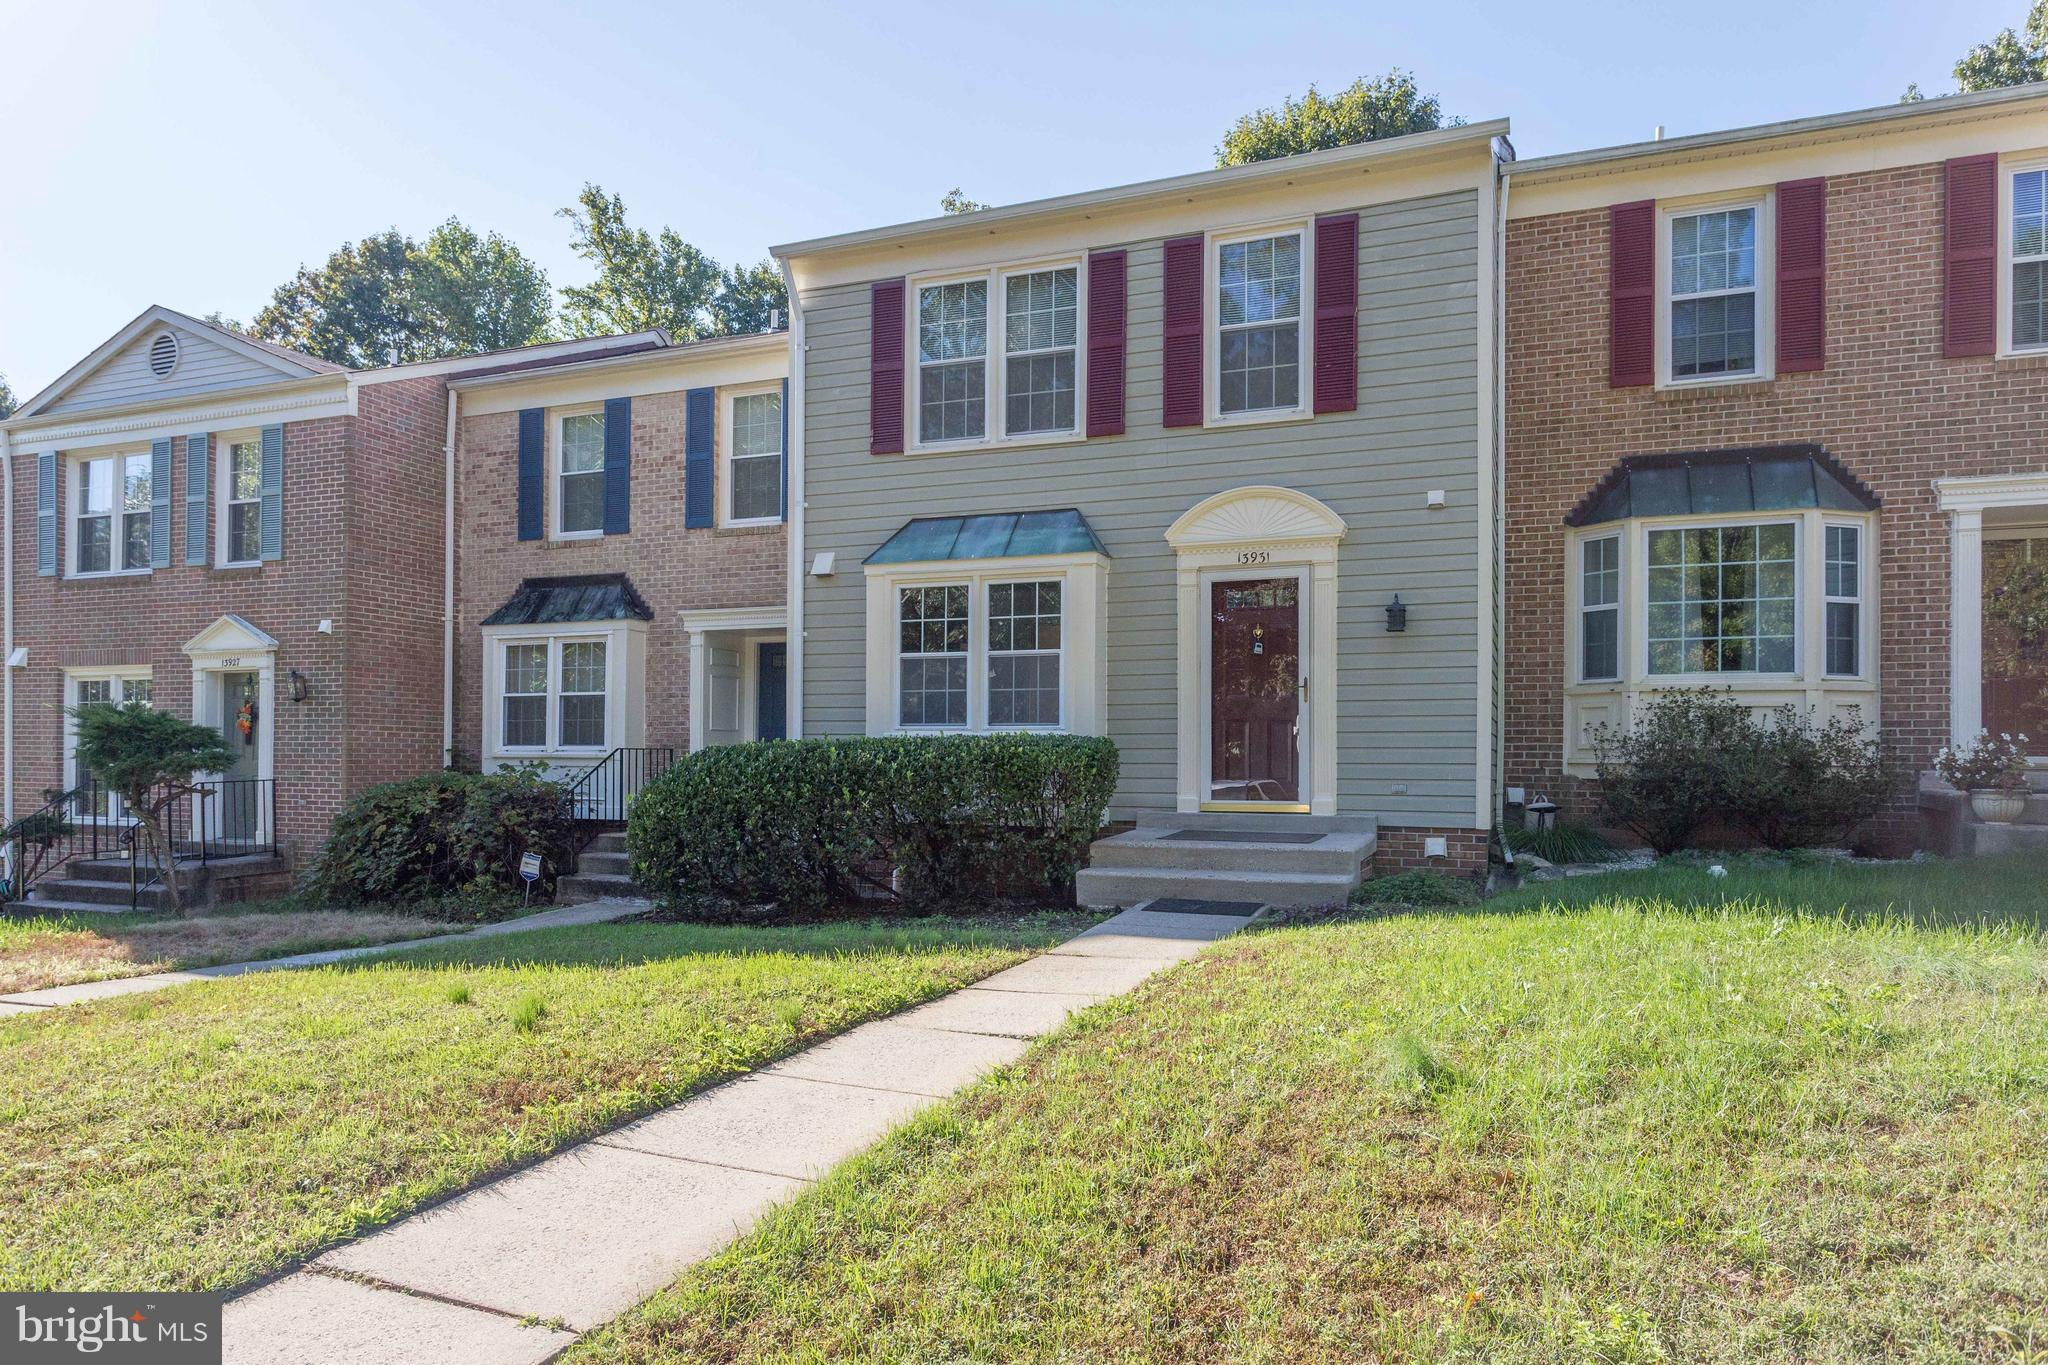 13931 WATER POND COURT, CENTREVILLE, VA 20121